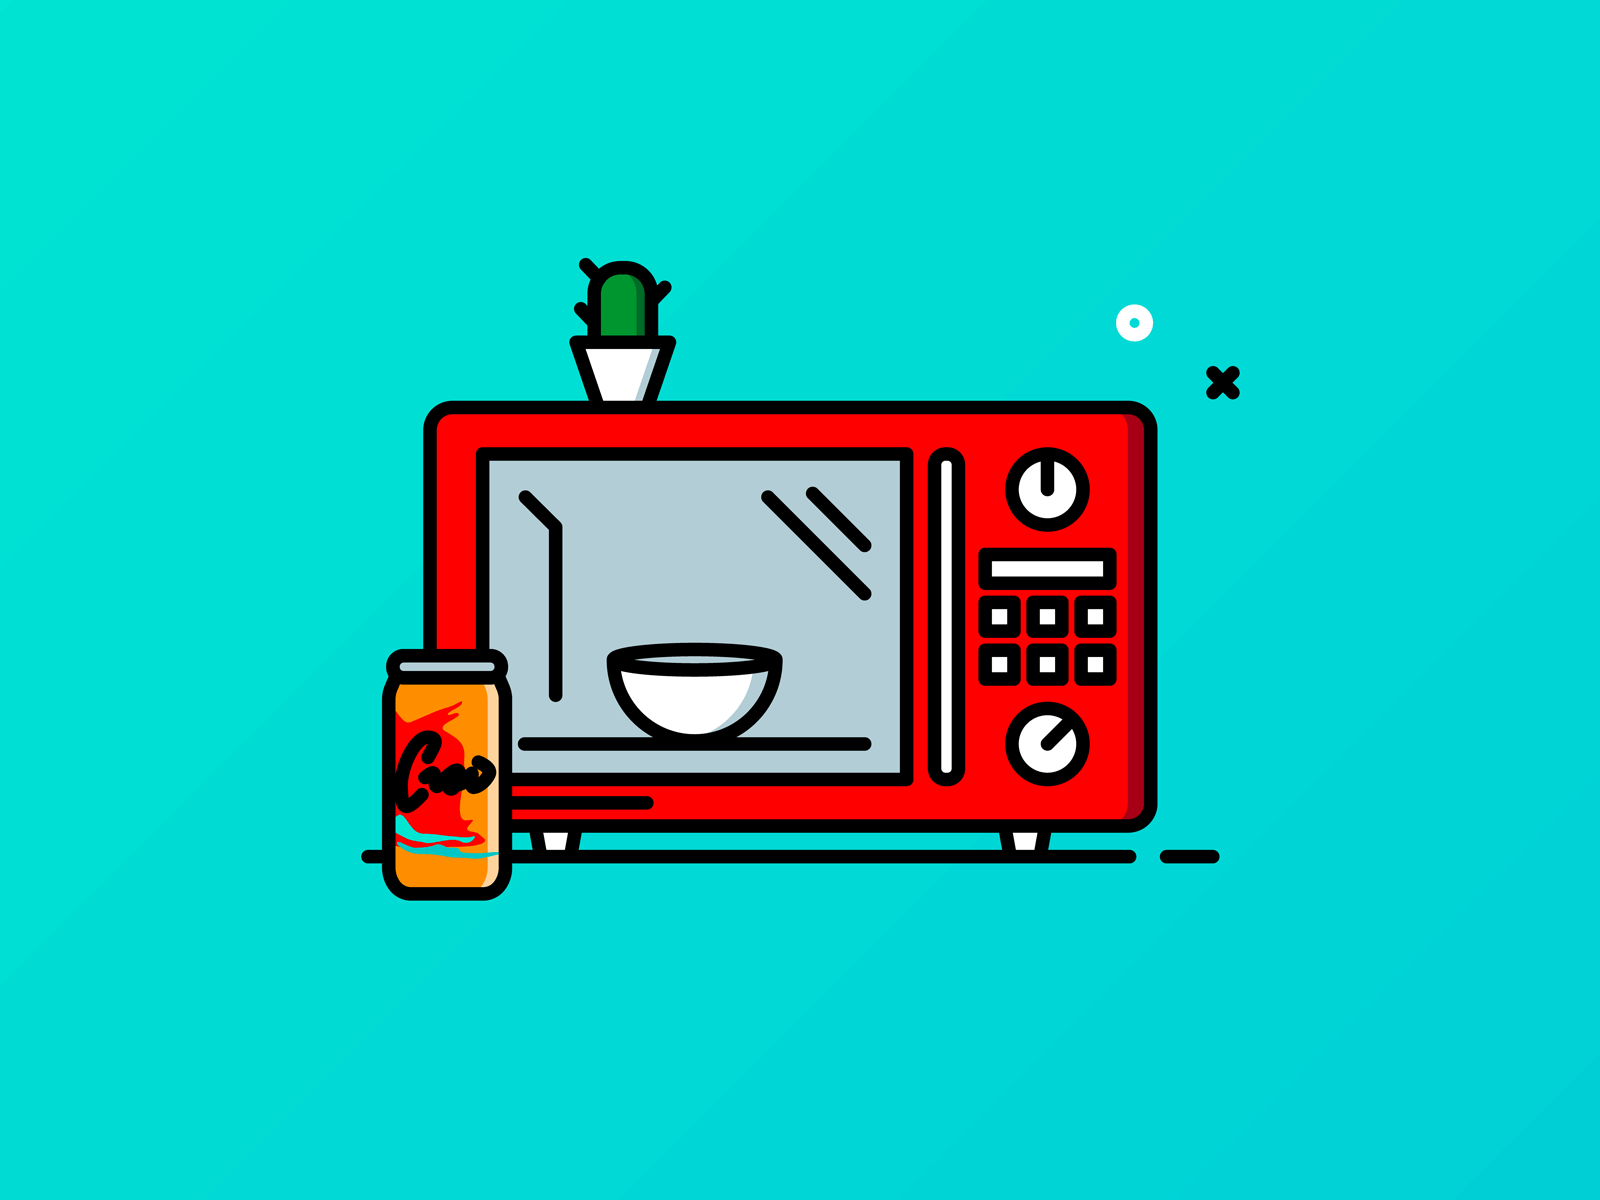 microwave-millennial.png